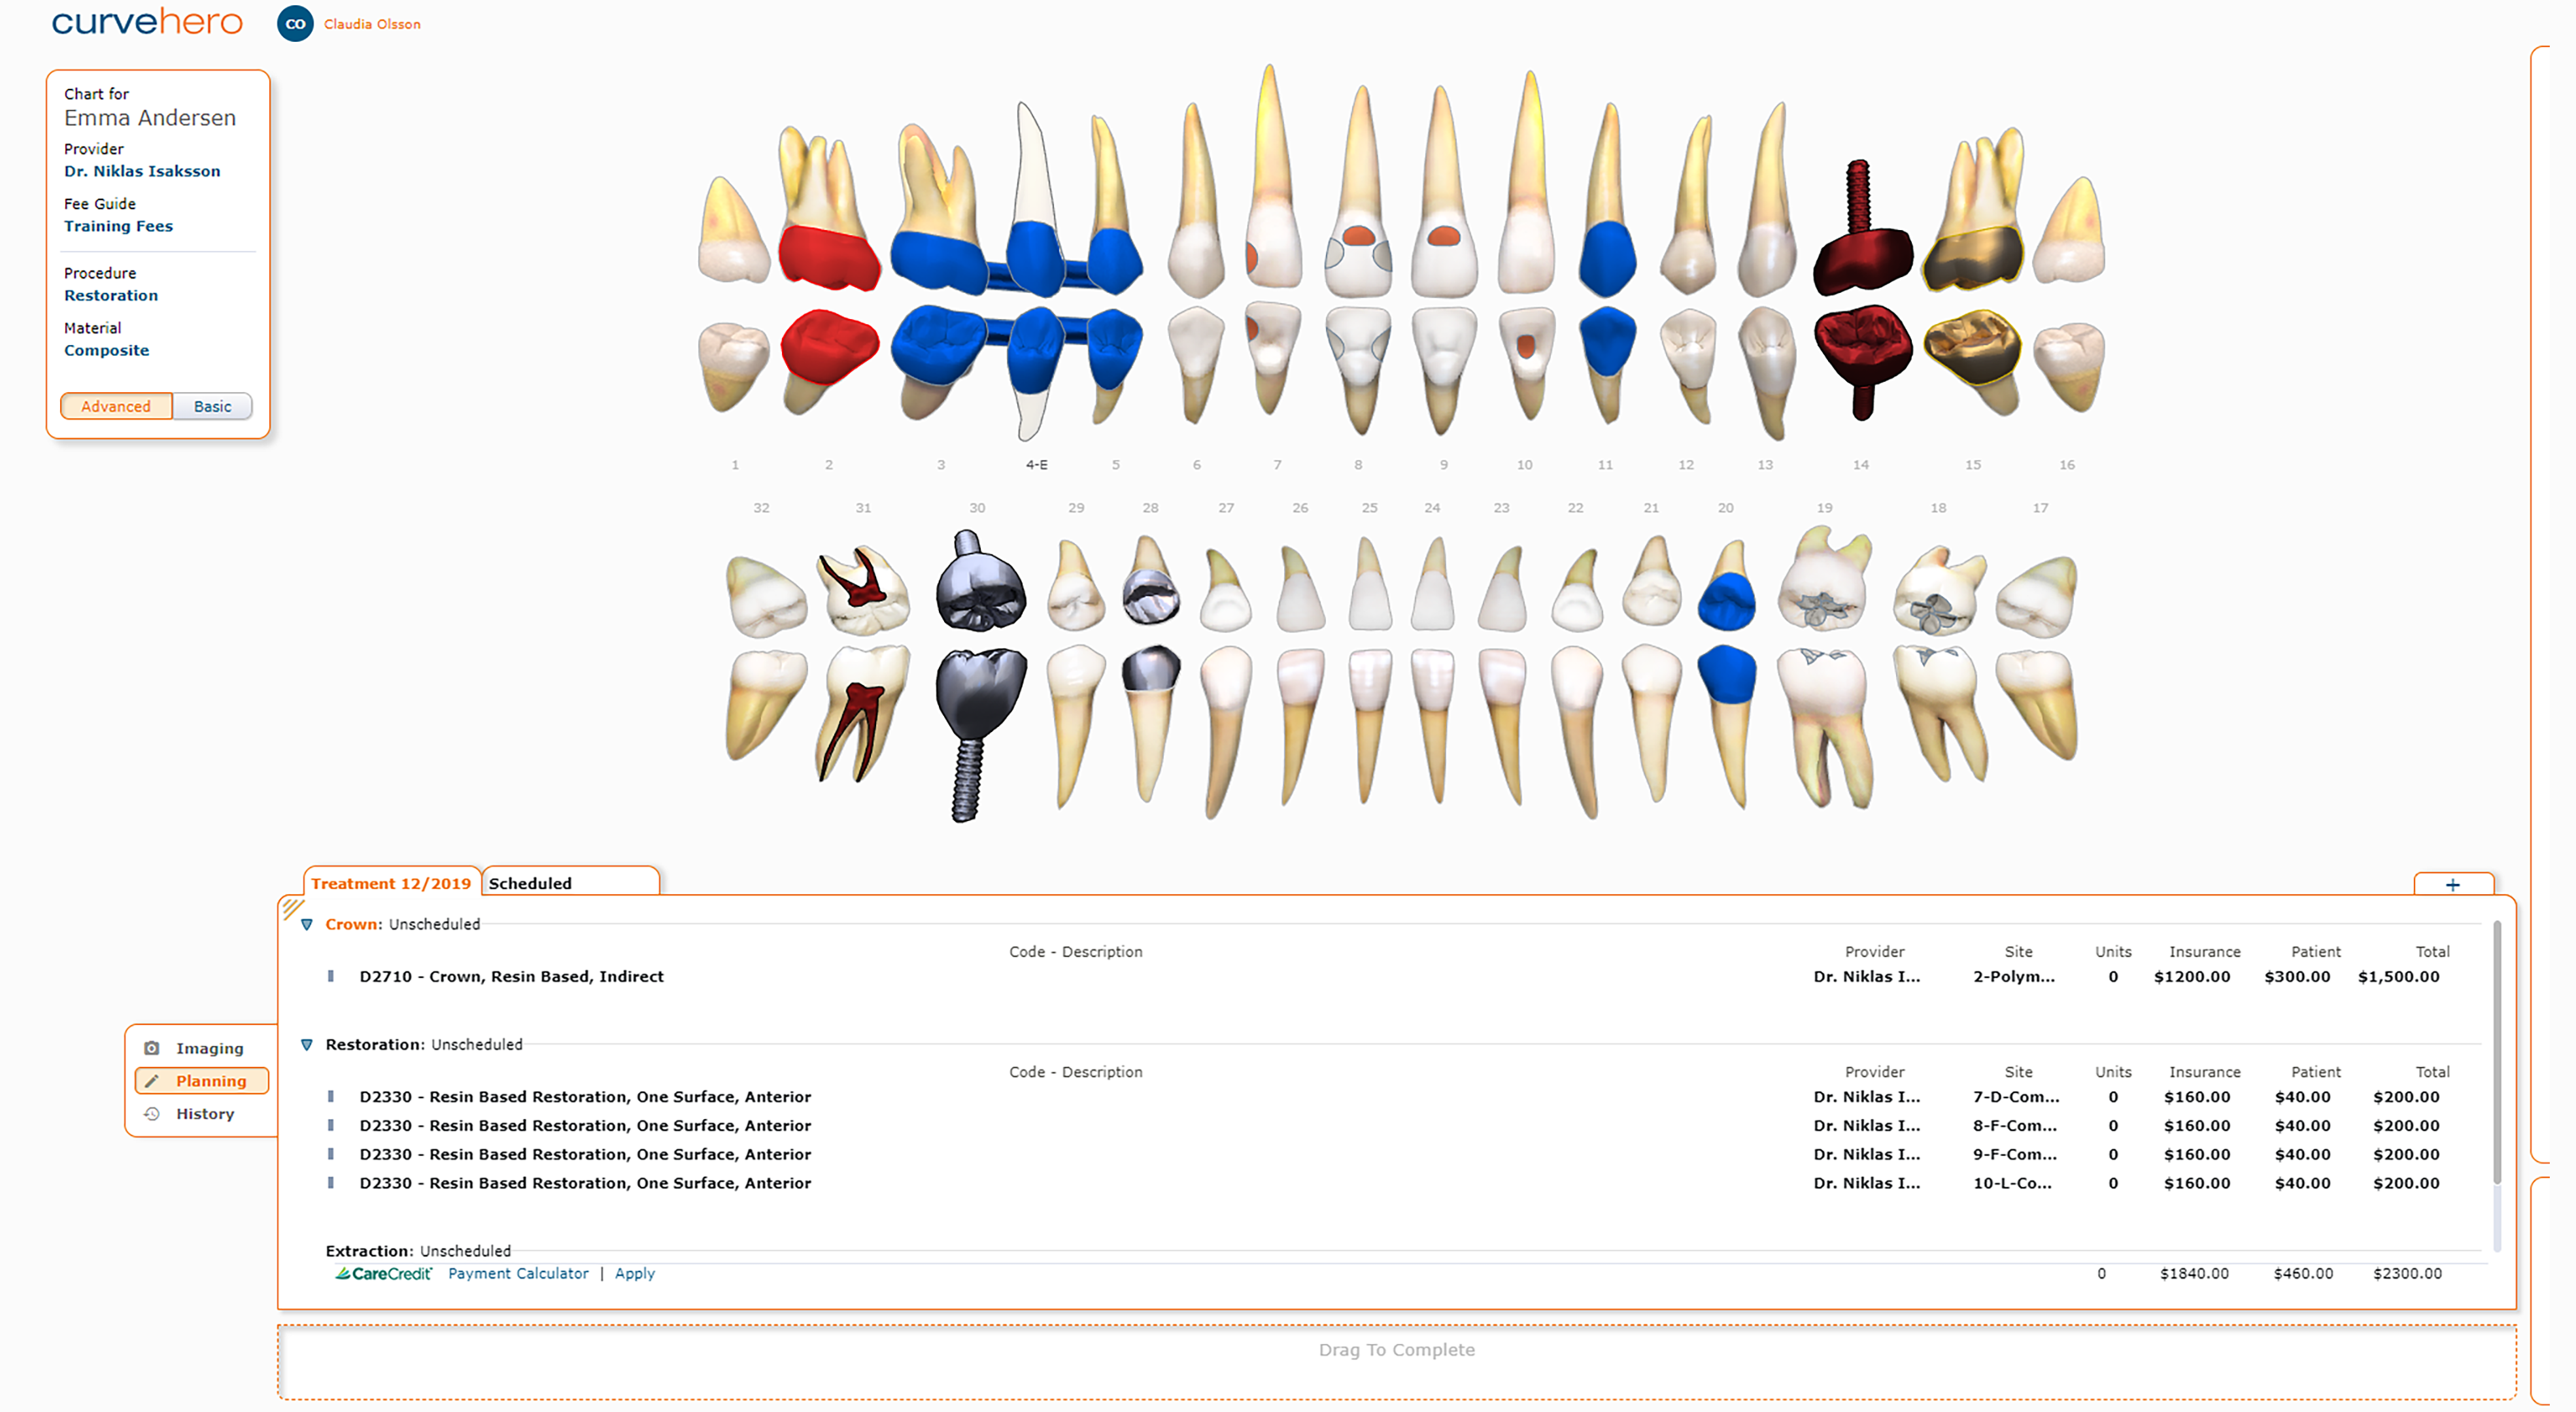 The Charting module enables you to input, edit, and view dental procedures.